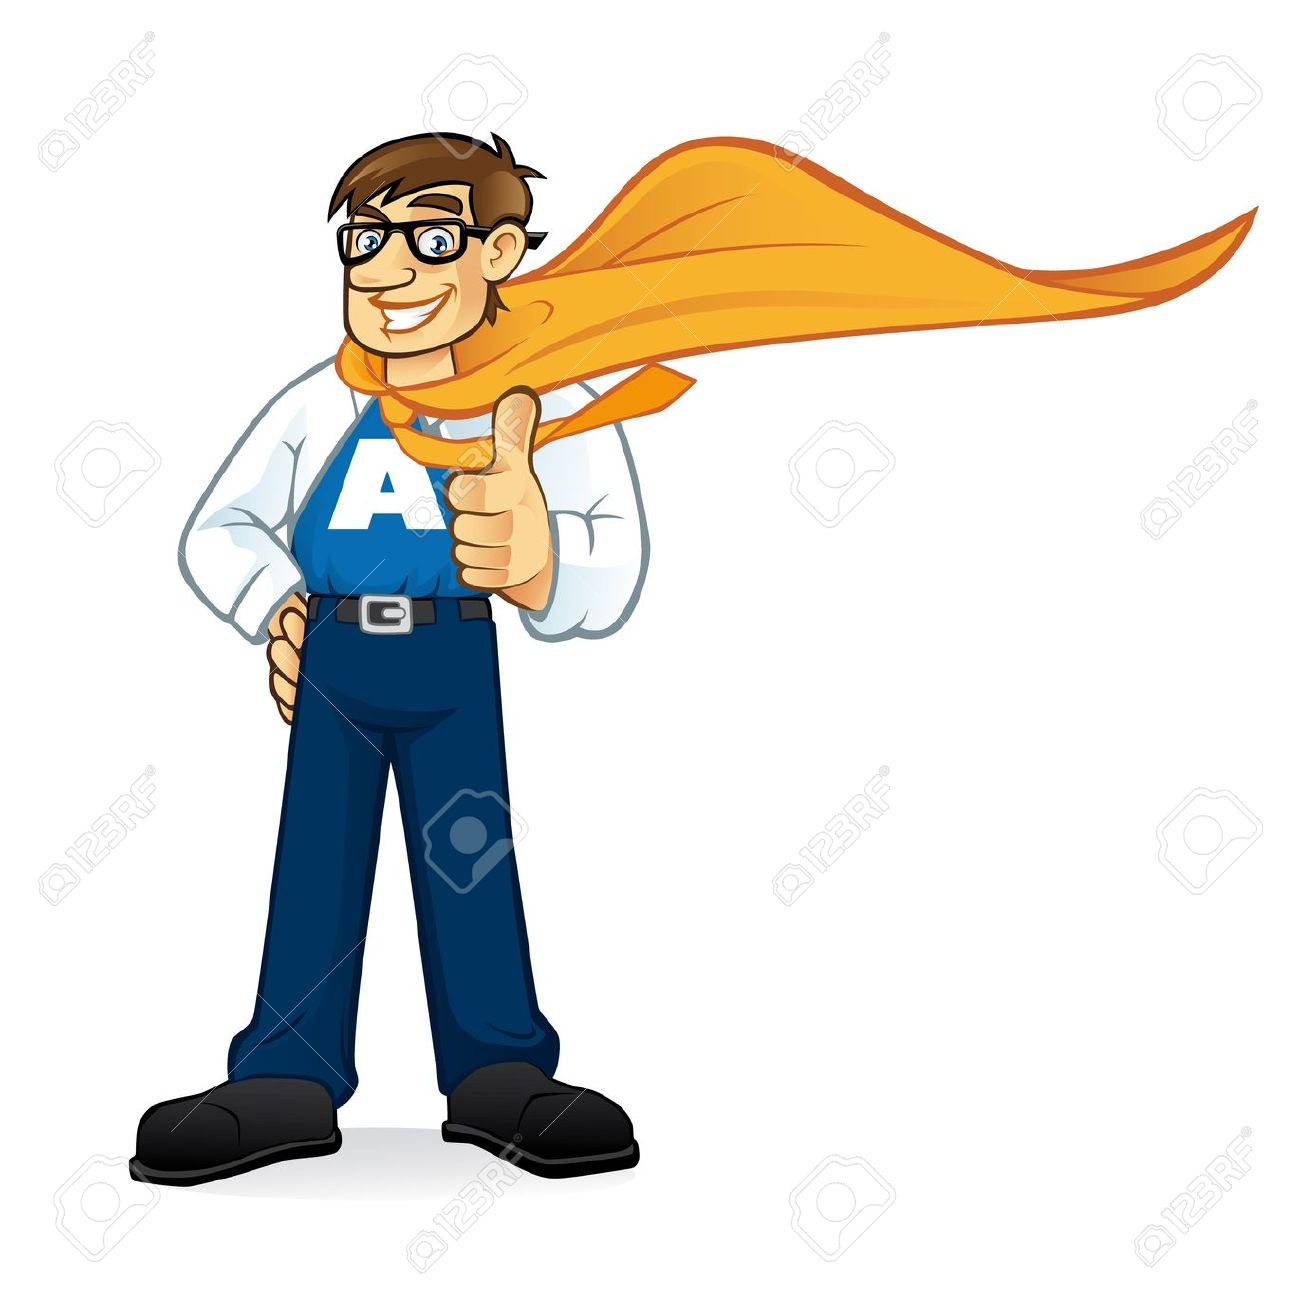 Superhero thumbs up clipart vector black and white download Superhero thumbs up clipart - ClipartFest vector black and white download